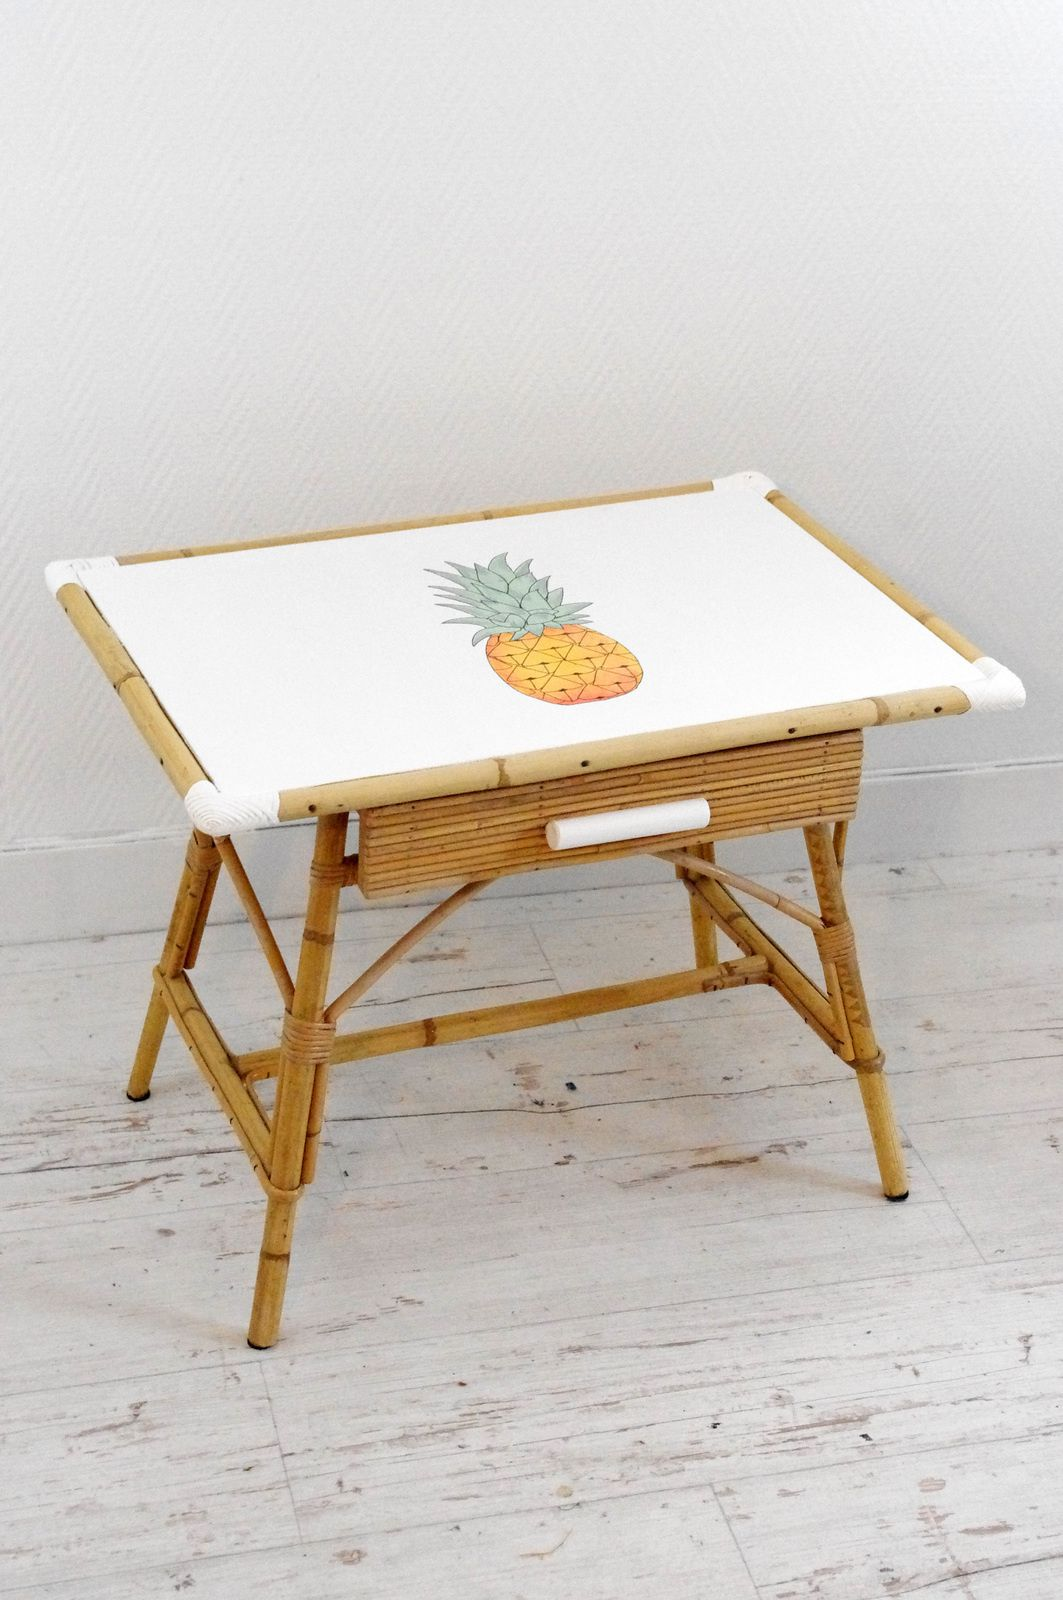 bureau d 39 enfant avec ananas l 39 abracadabroc. Black Bedroom Furniture Sets. Home Design Ideas